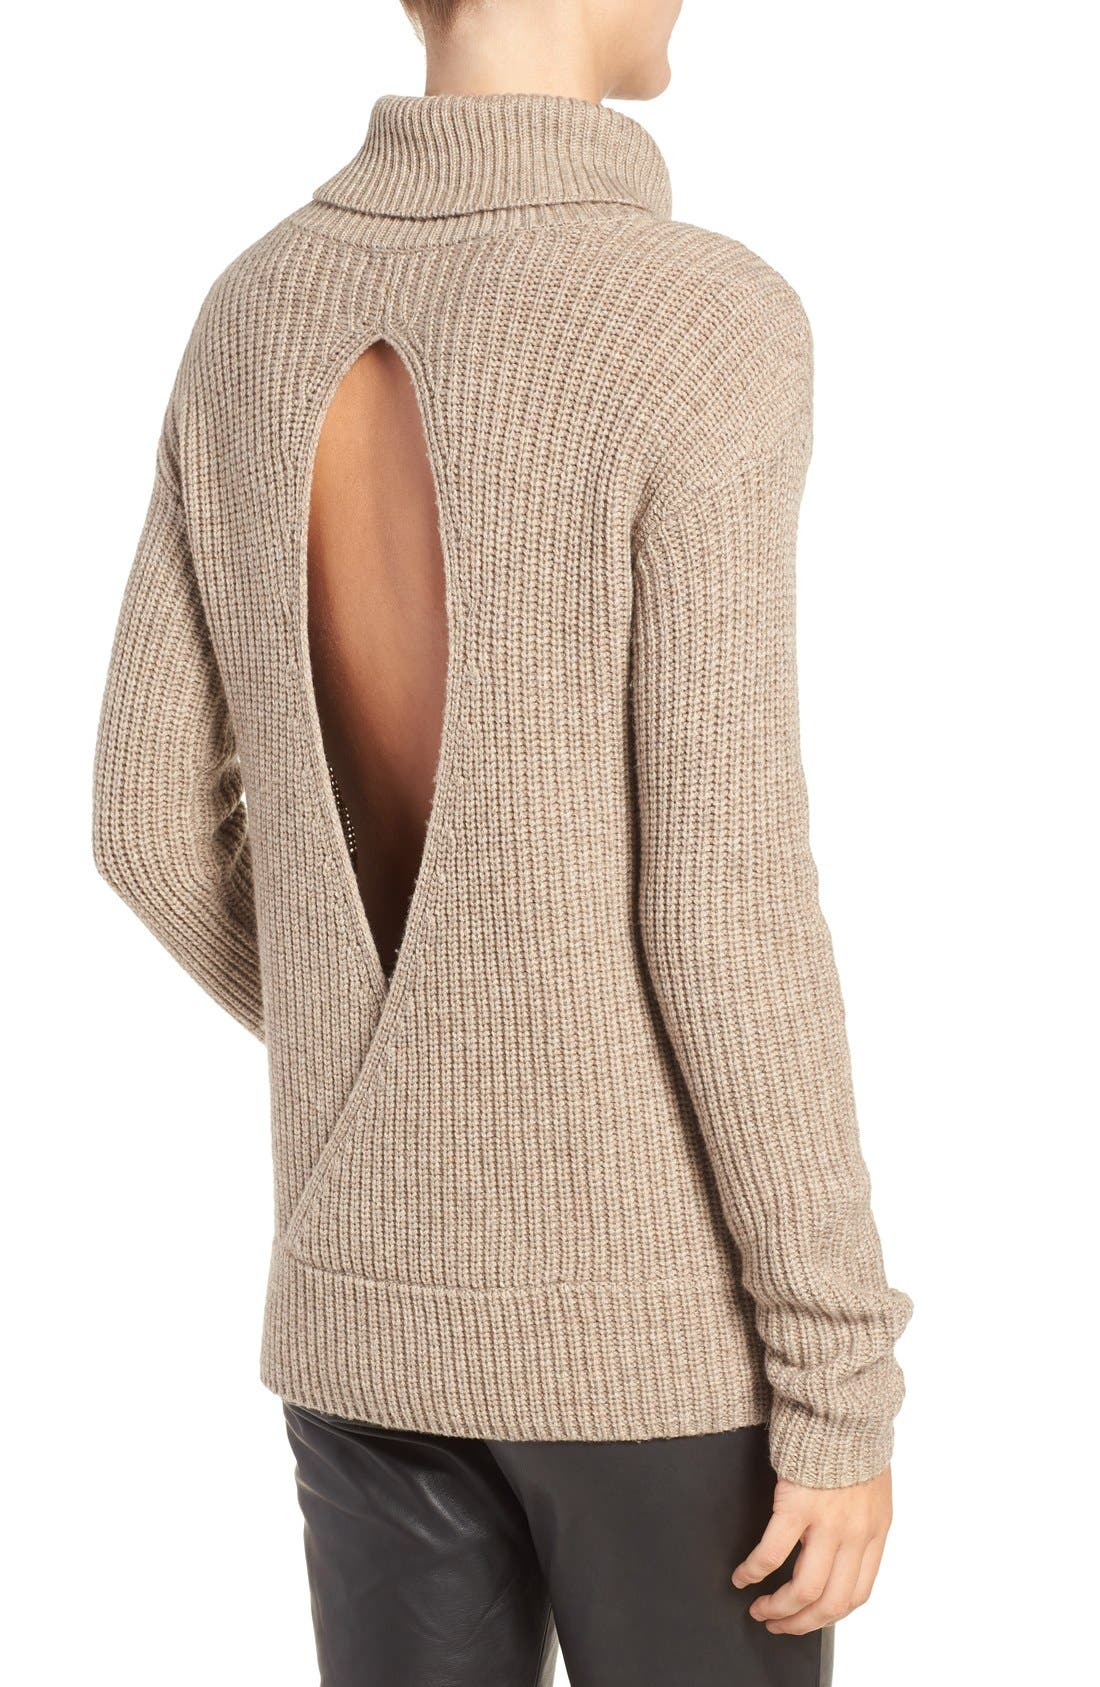 OLIVIA PALERMO + CHELSEA28 Open Back Wool & Cashmere Turtleneck Sweater, Main, color, 235